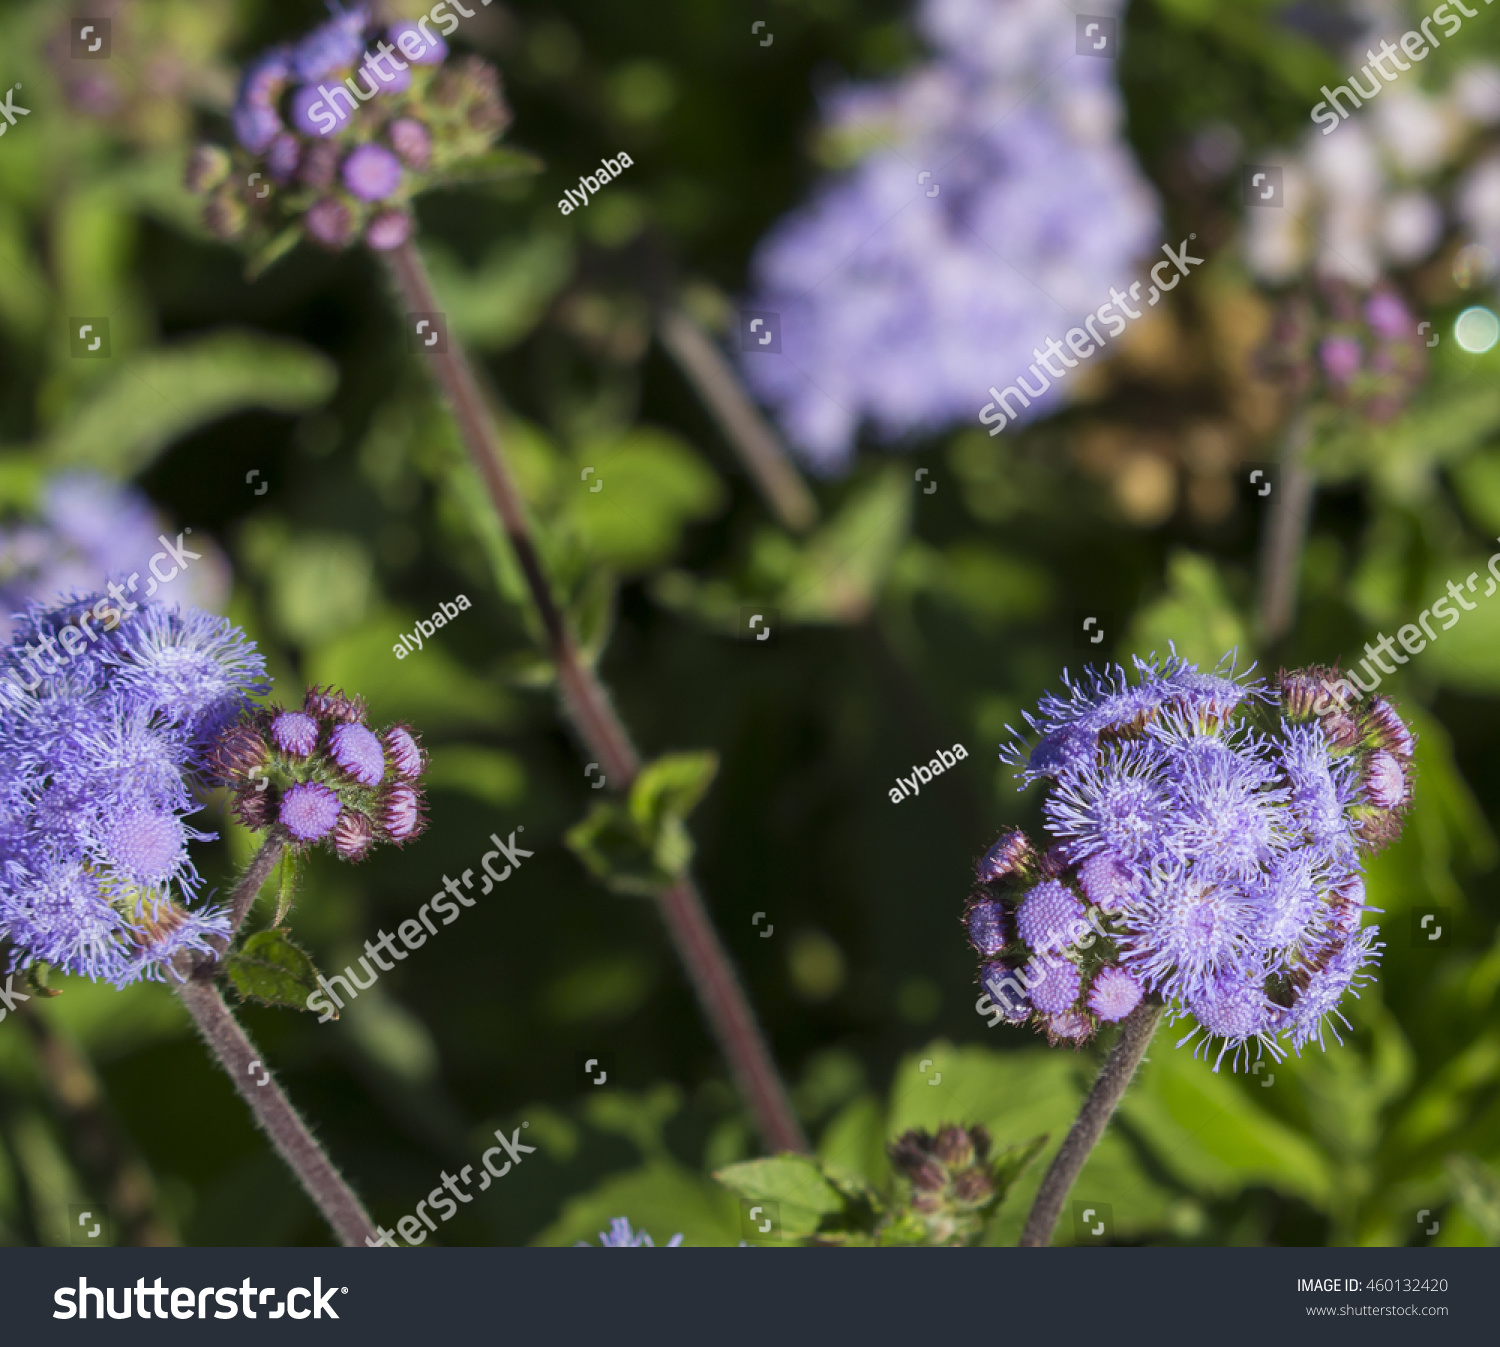 Royalty Free Ethereal Misty Powder Blue Flowers Of 460132420 Stock